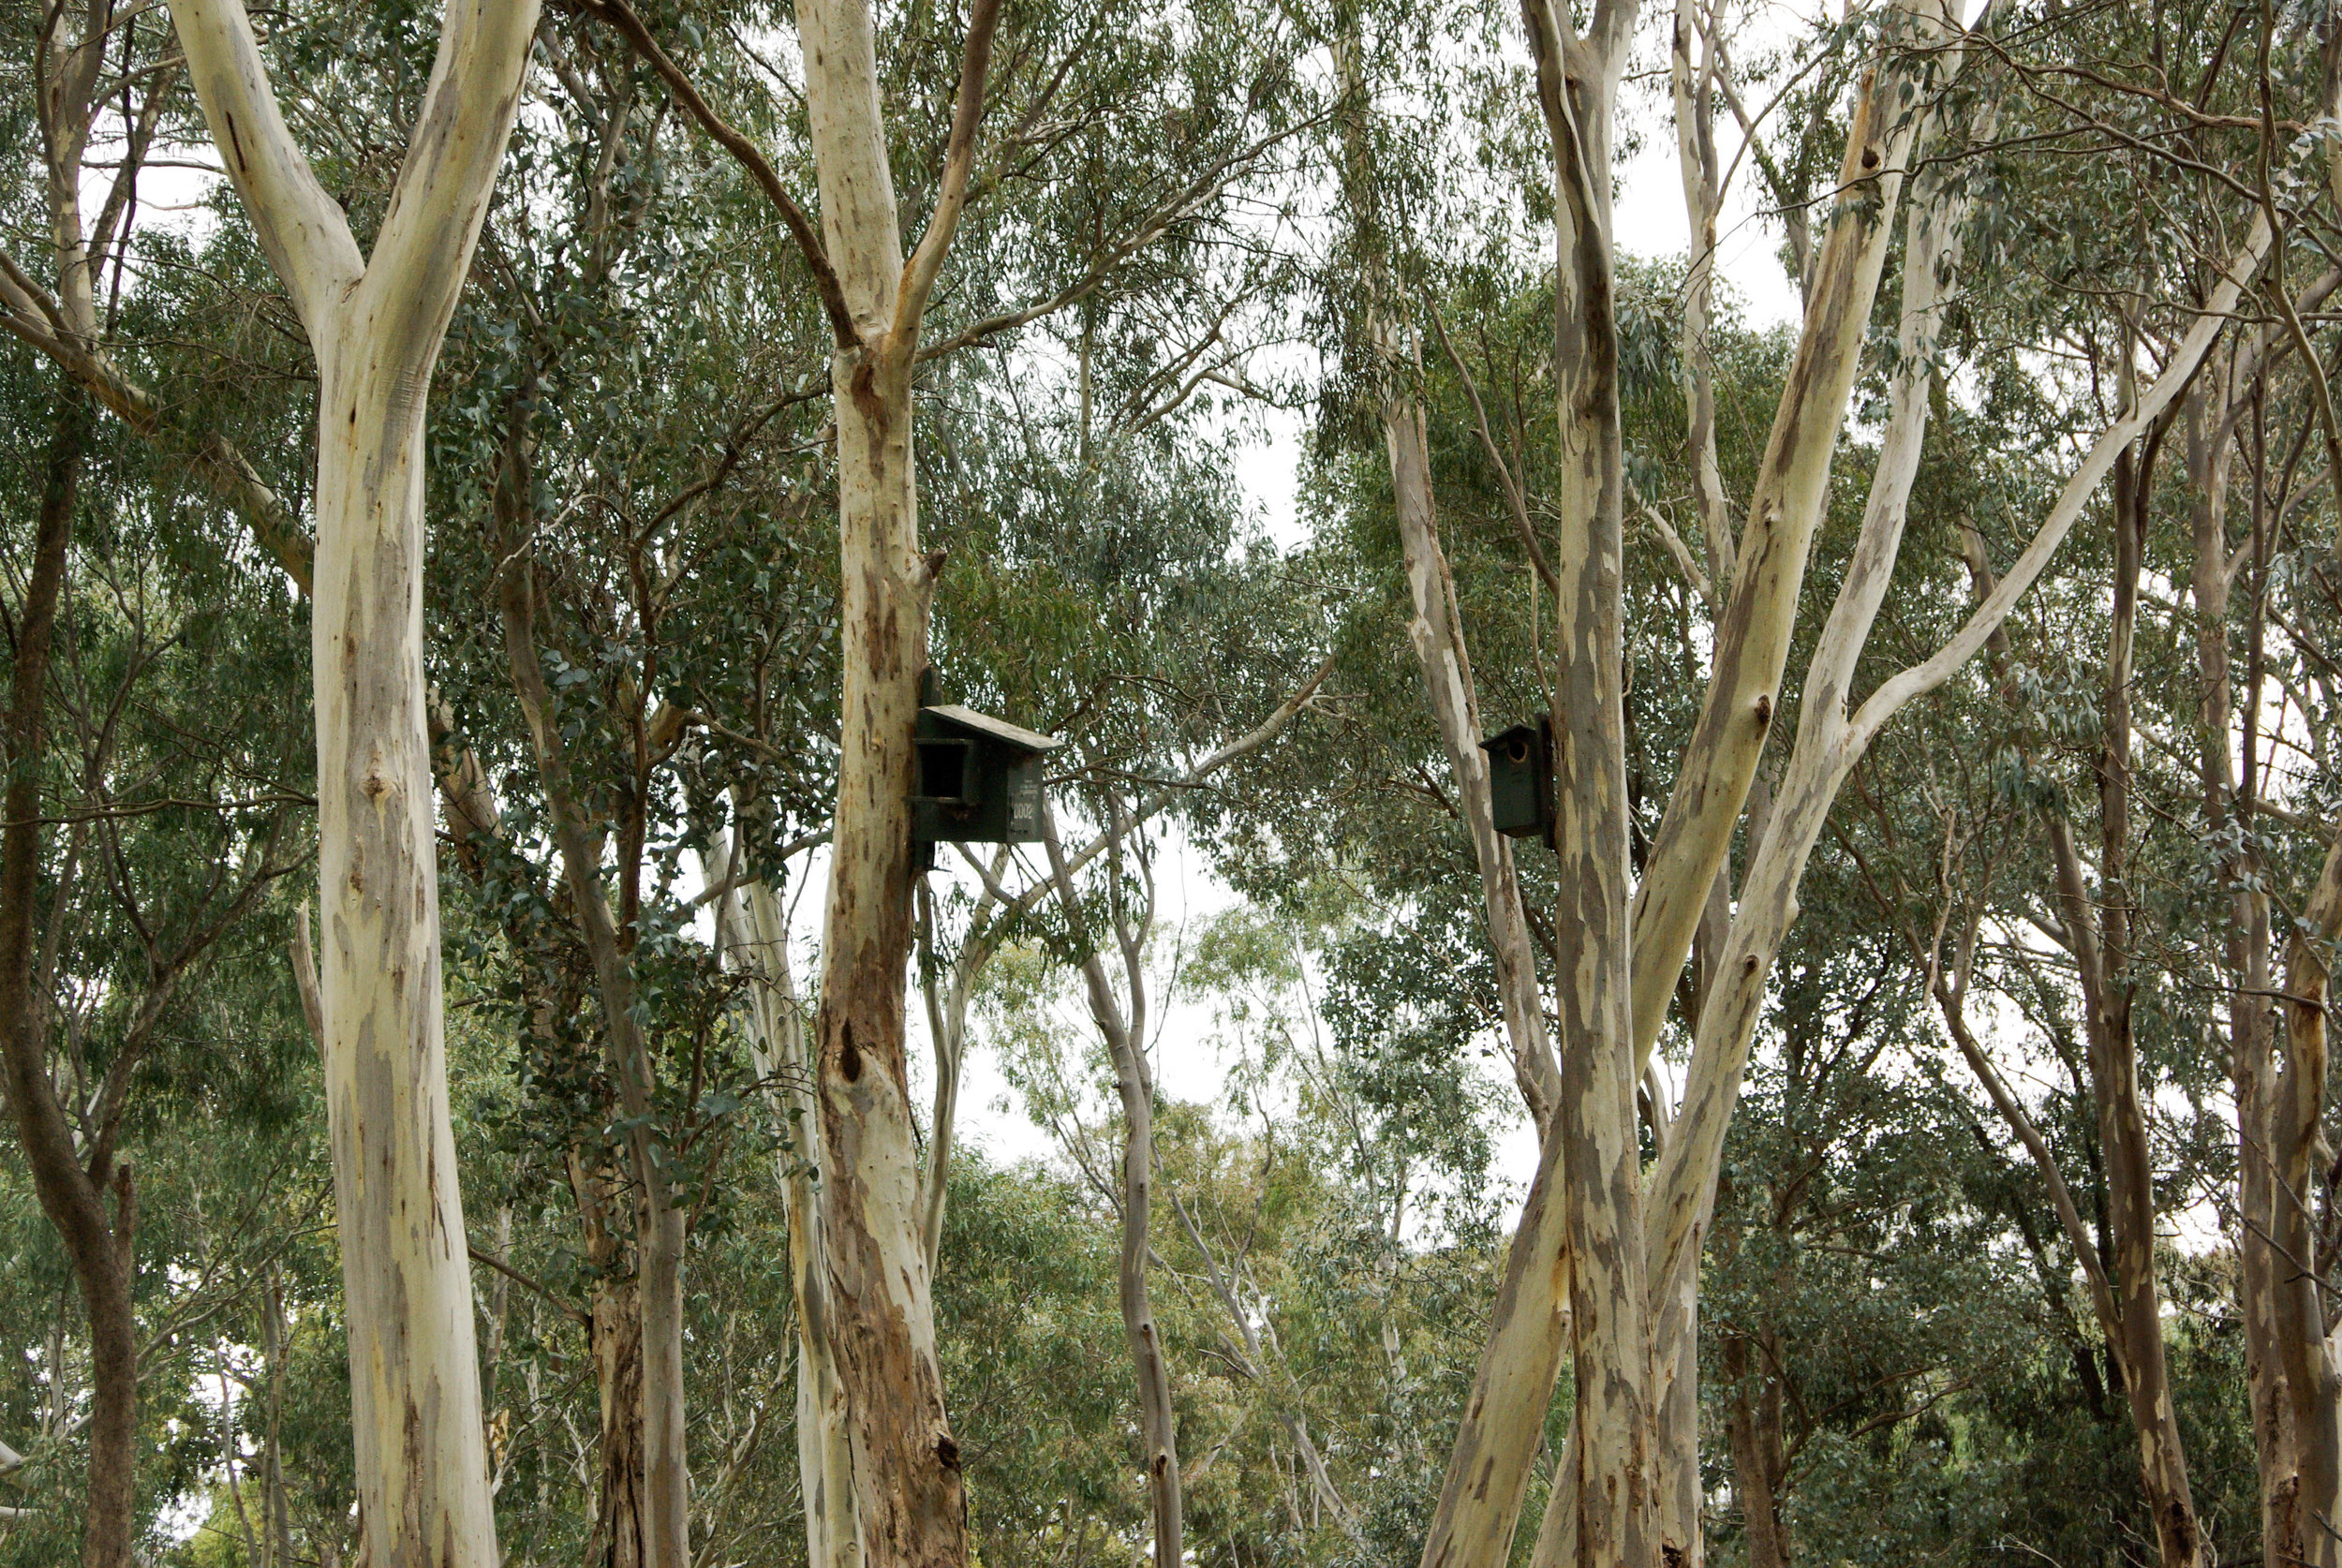 Nesting boxes provide additional habitat for hollow-dependent species including parrots, possums and gliders.  Image:   Jacinta Humphrey